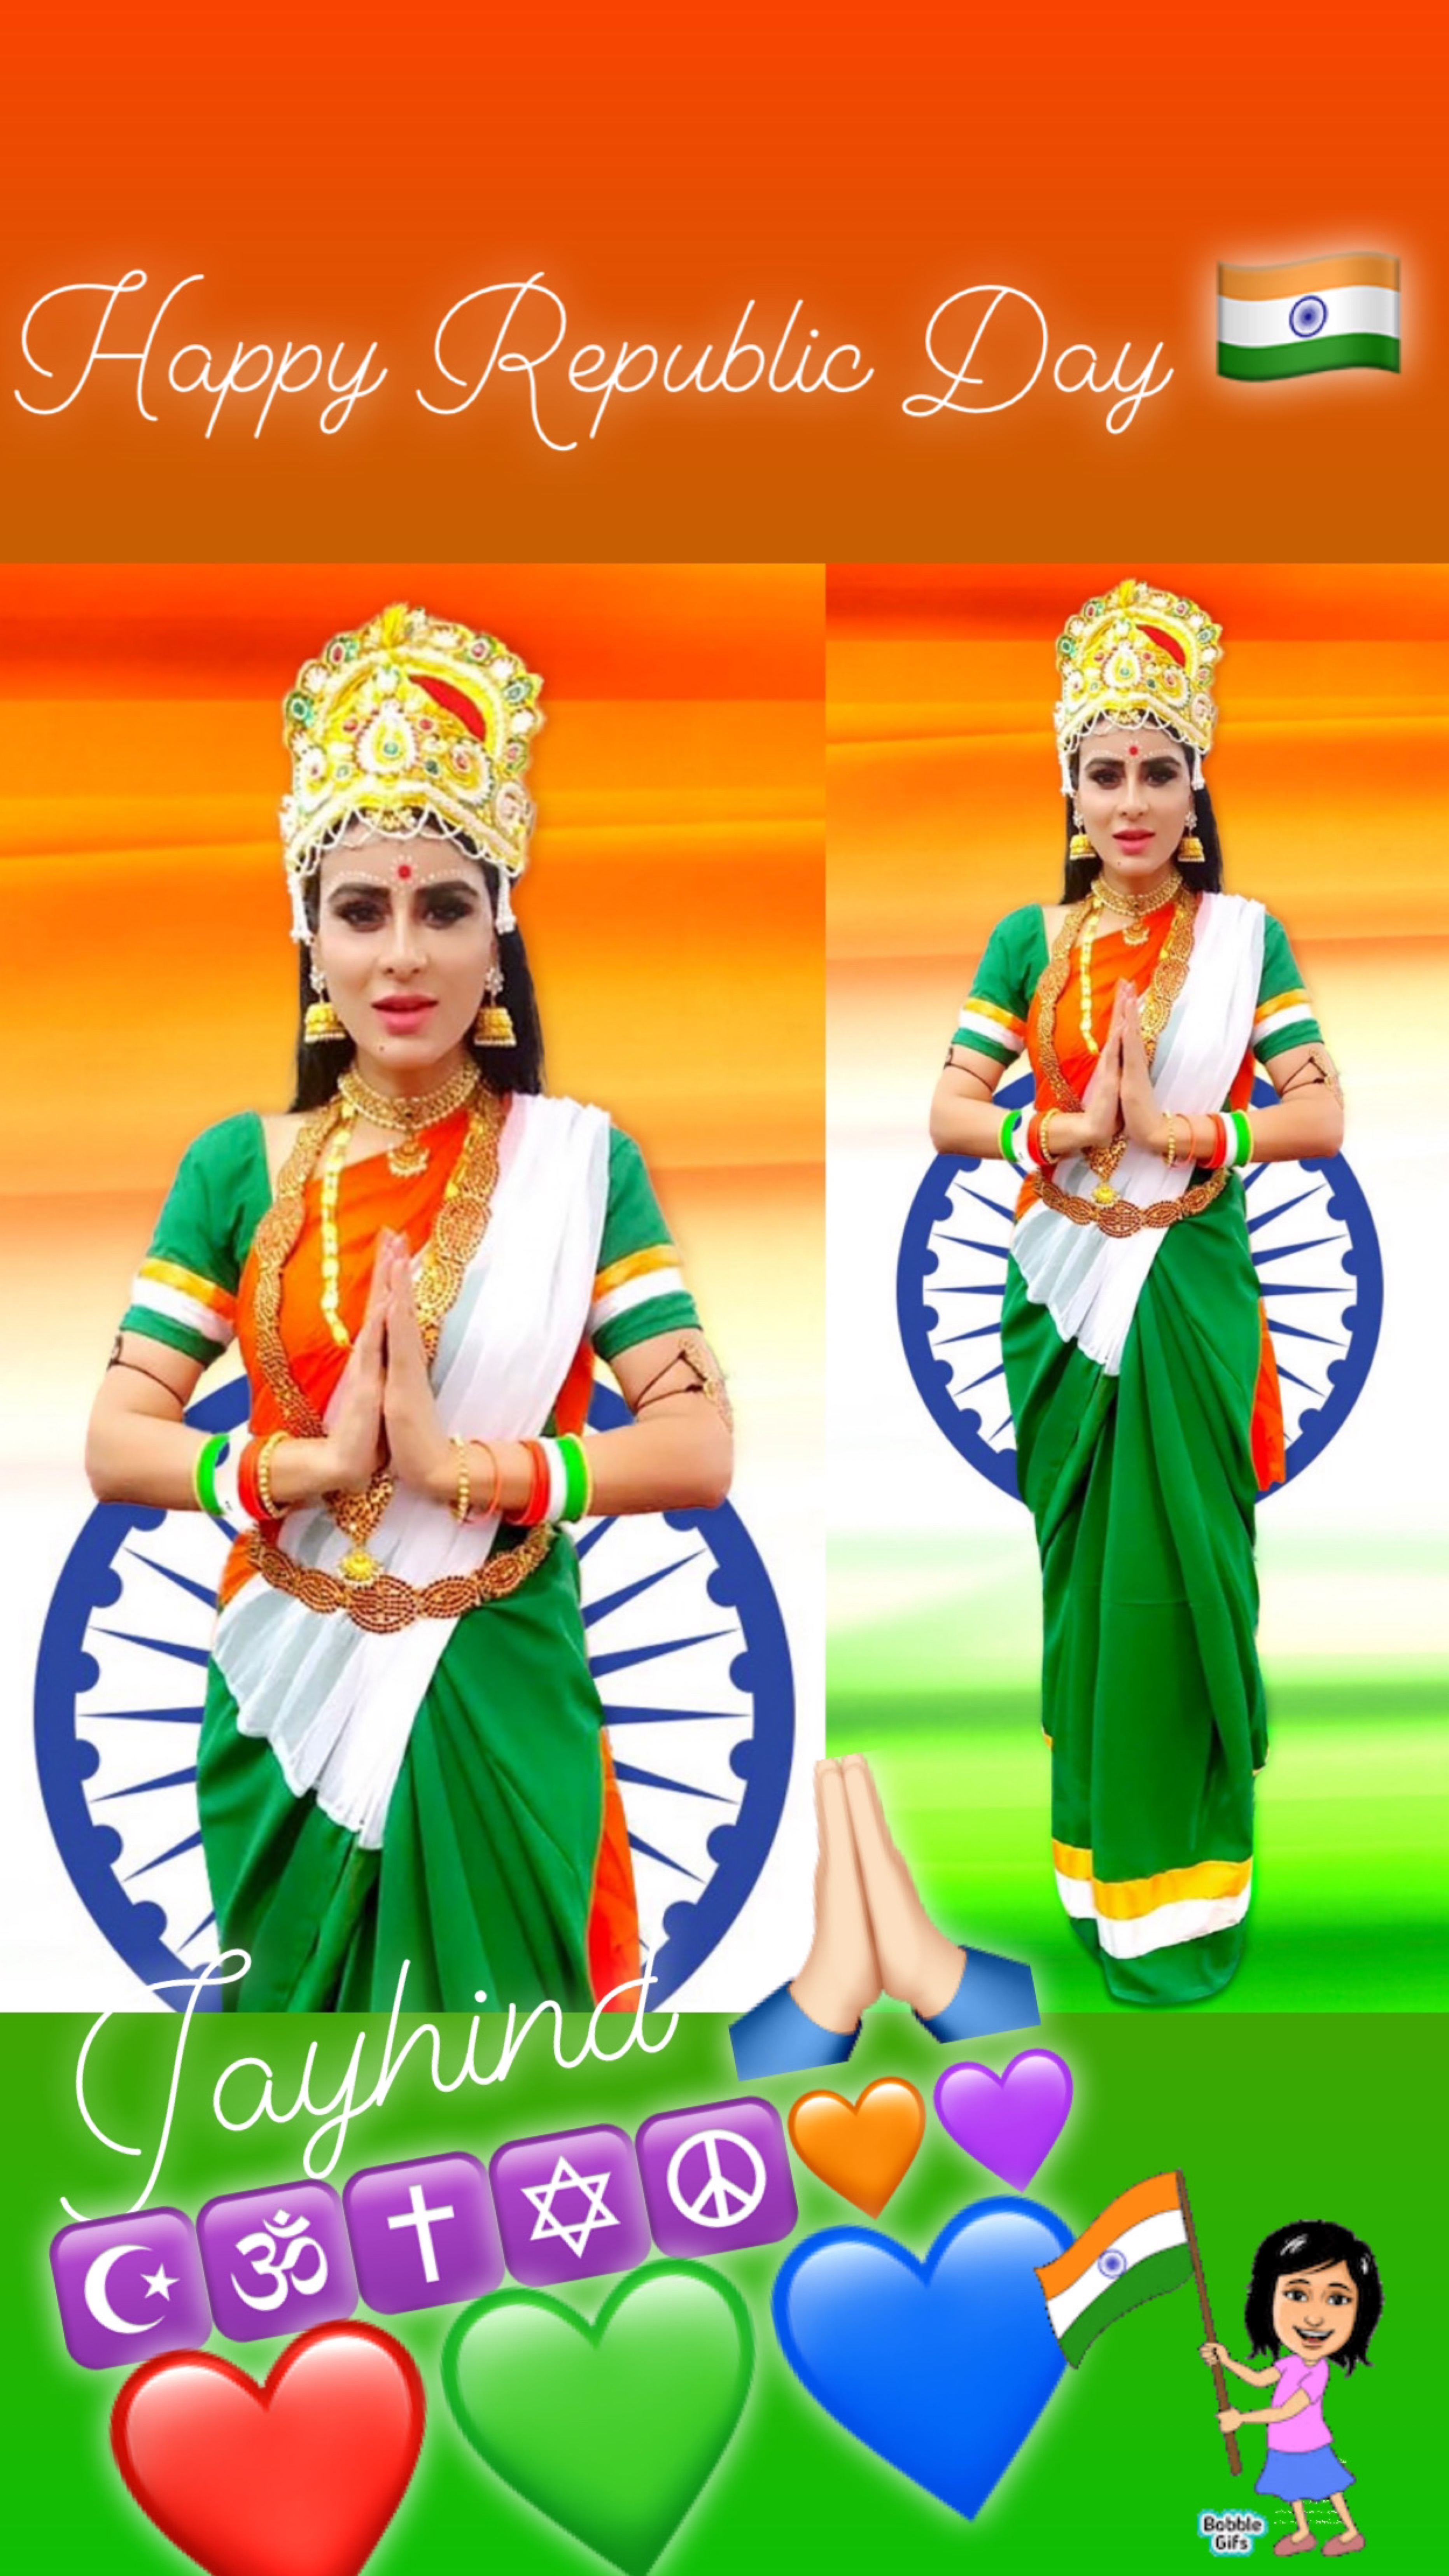 🌸Freedom in the mind, Strength in the words, Pureness in our blood, Pride in our souls, Zeal in our hearts, Let's salute our India on Republic Day.   🌼Happy Republic Day 🇮🇳🇮🇳🇮🇳🇮🇳🇮🇳  🍀Jayhind 🙏🏻 ☪️🕉✝️✡️☮️🧡💜❤️💚💙  #happyrepublicday #justice #liberty #equality #fraternty #democracy #secular #republic #jaihind #merabharatmahan #republicday #india #photography #indian #patriots #love #national #incredibleindia  : ; #missmermaidasiainternational2019 #RehaaKhann #DohaQatar #MyDubai  #AmchiMumbai #RehaaKhannBlogger #RehaaKhannQueenlife #RehaaKhannPublicfigure #RehaaKhannStylefile #RehaaKhannFashion #RehaaKhannWithclass #RehaaKhannFans #Actress #Model #Bollywood #Tollywood #Pollywood #Business #Person #Media #Production🏡